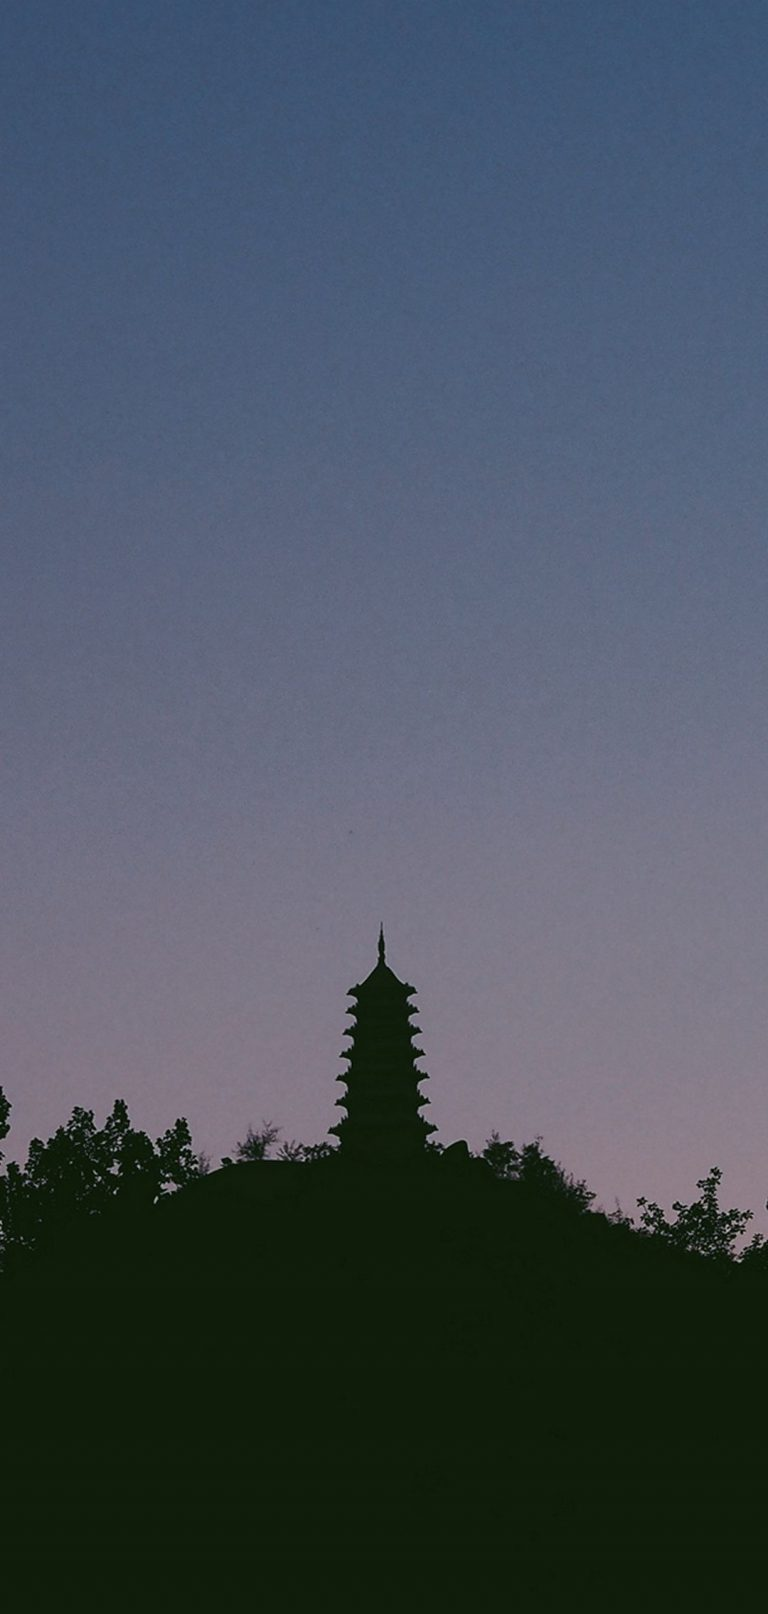 Temple Tower Sky Silhouette 1080x2270 768x1614